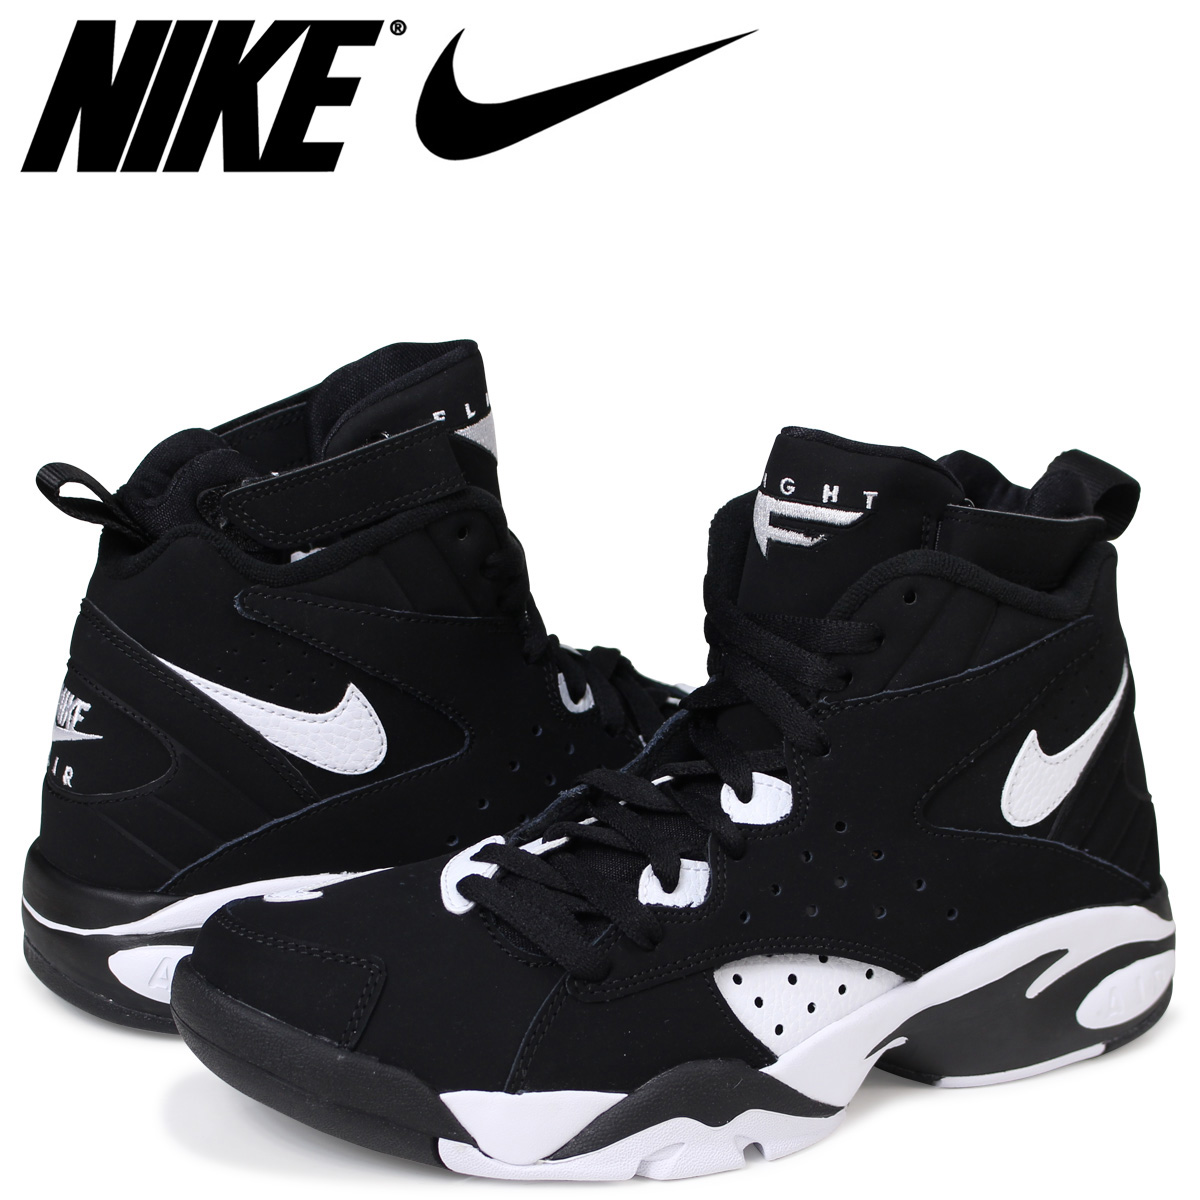 c78ee7c3d2dbc1 Nike NIKE air maestro 2 sneakers men AIR MAESTRO II LTD AH8511-001 black   load planned Shinnyu load in reservation product 5 19 containing